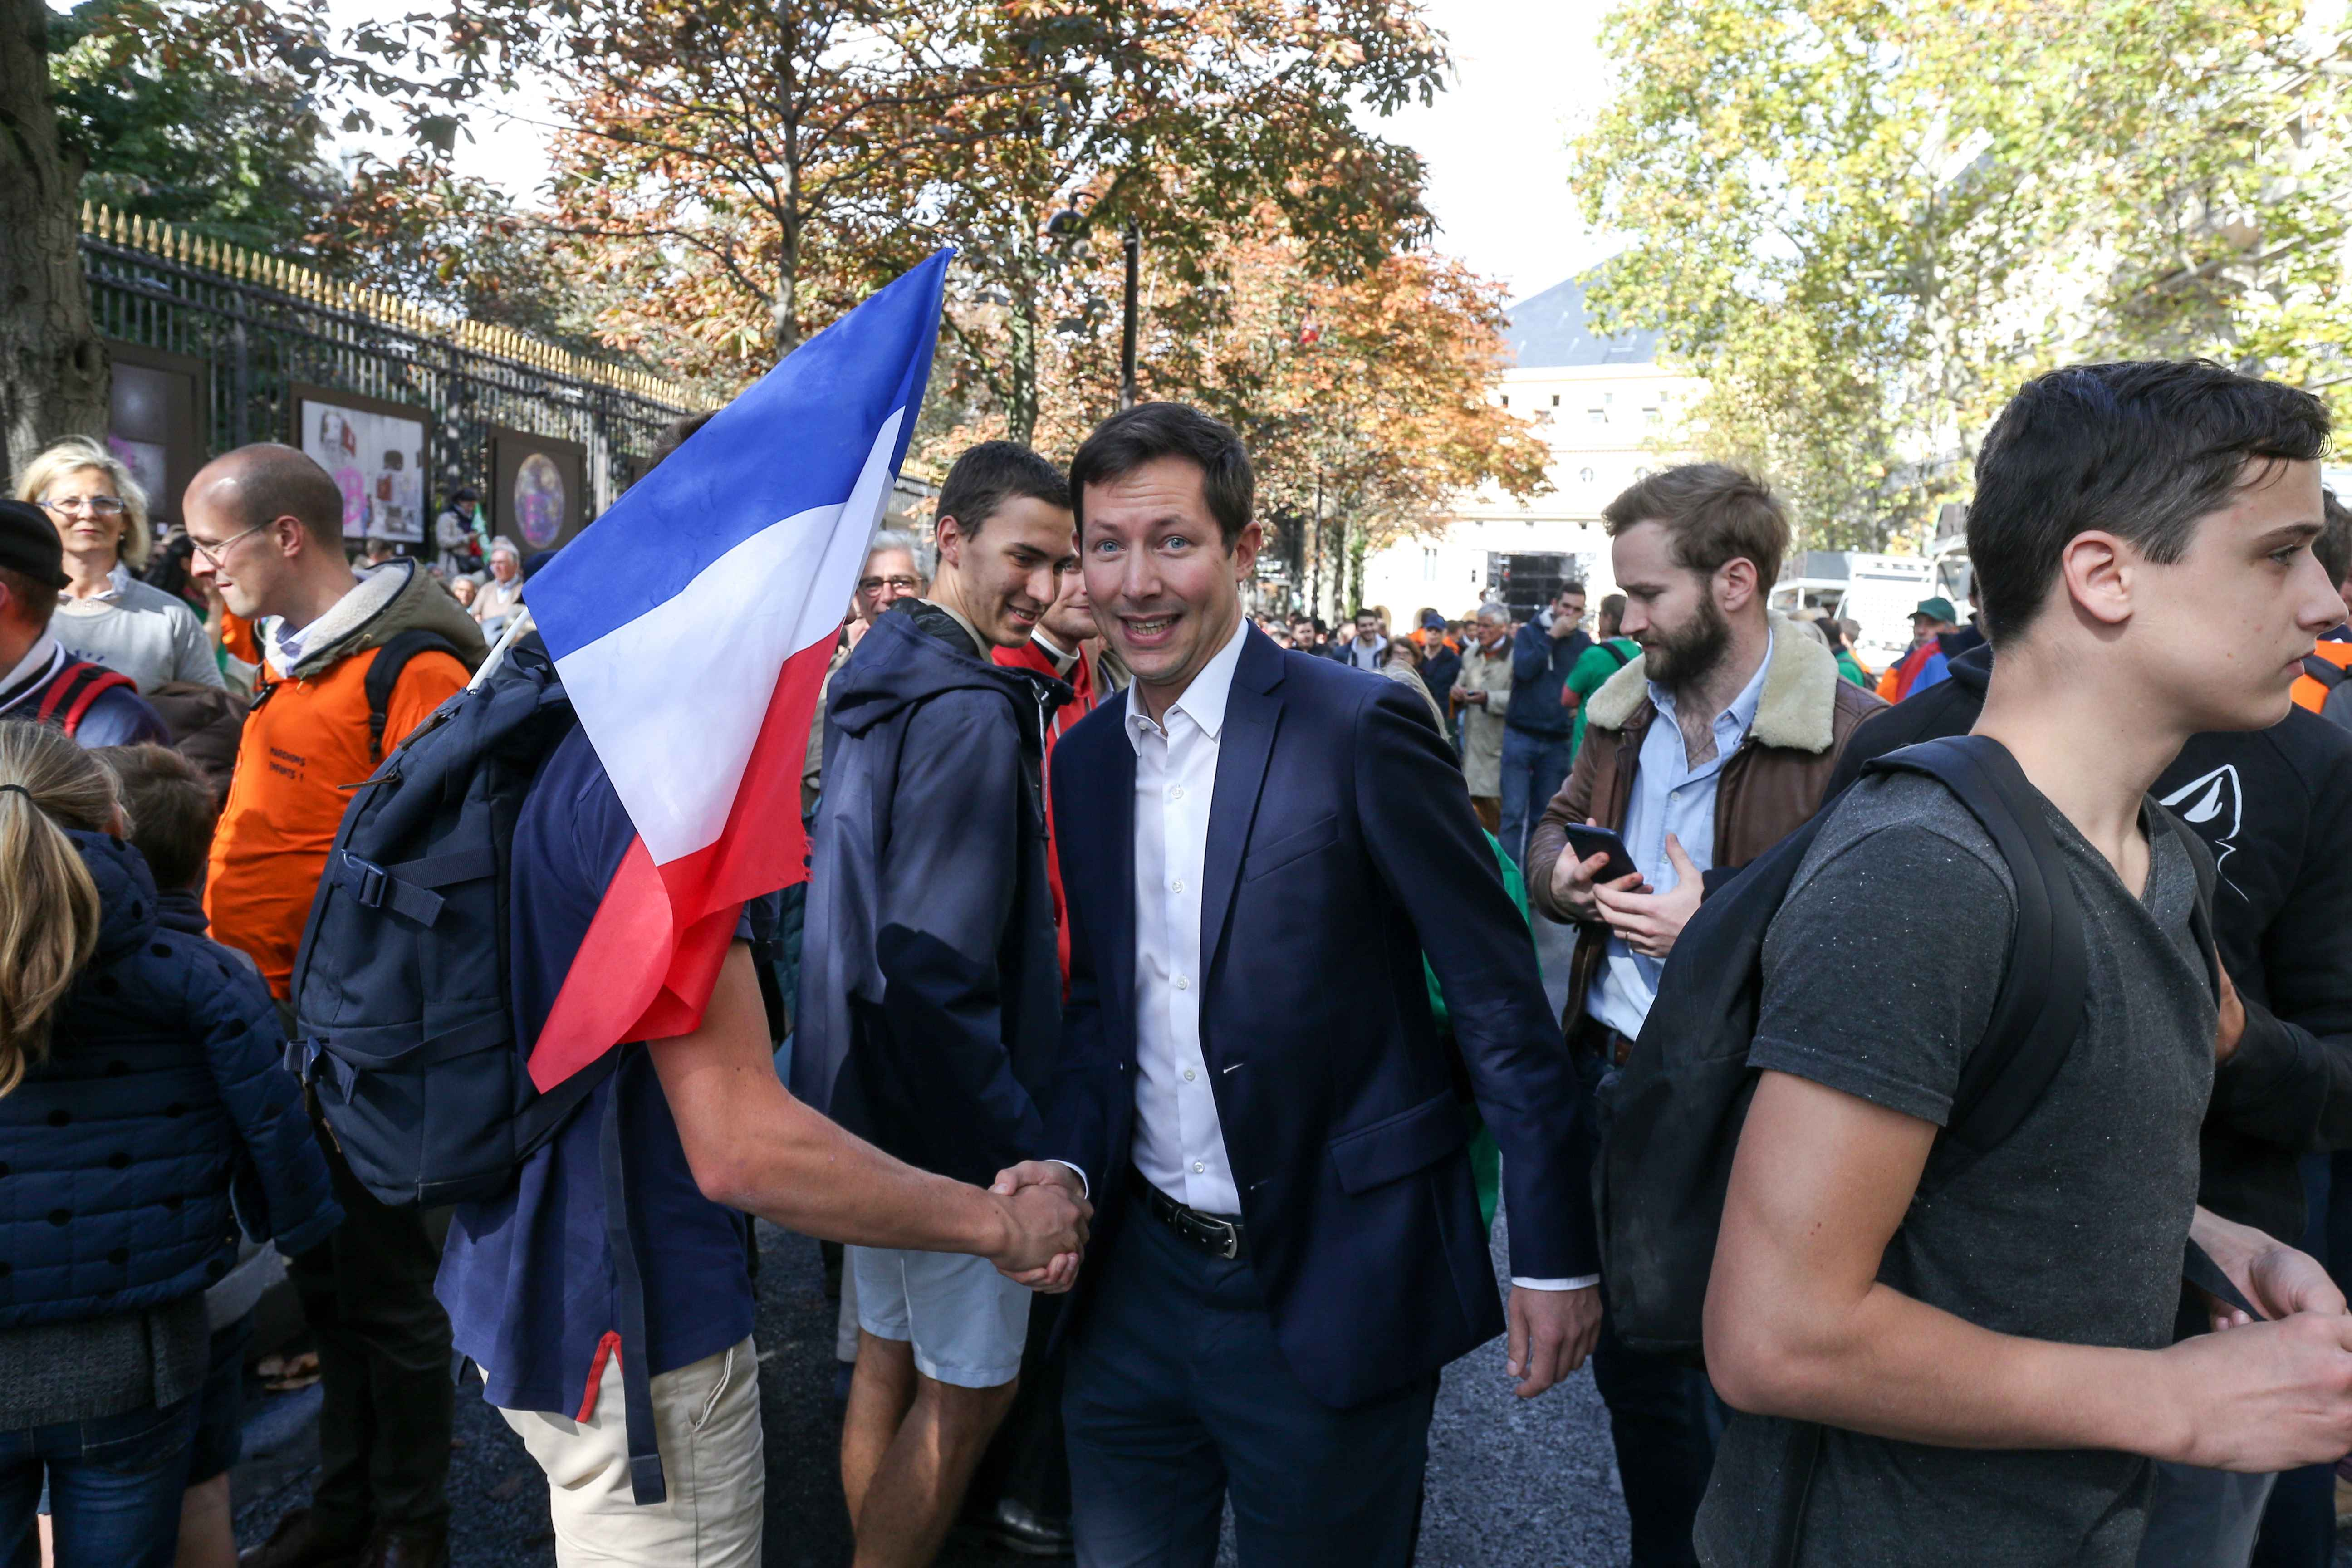 French european deputy Francois-Xavier Bellamy (C) takes part in a protest against a government plan to let single women and lesbians become pregnant with fertility treatments, on October 6, 2019 in Paris. The French National Assembly on September 26, 2019